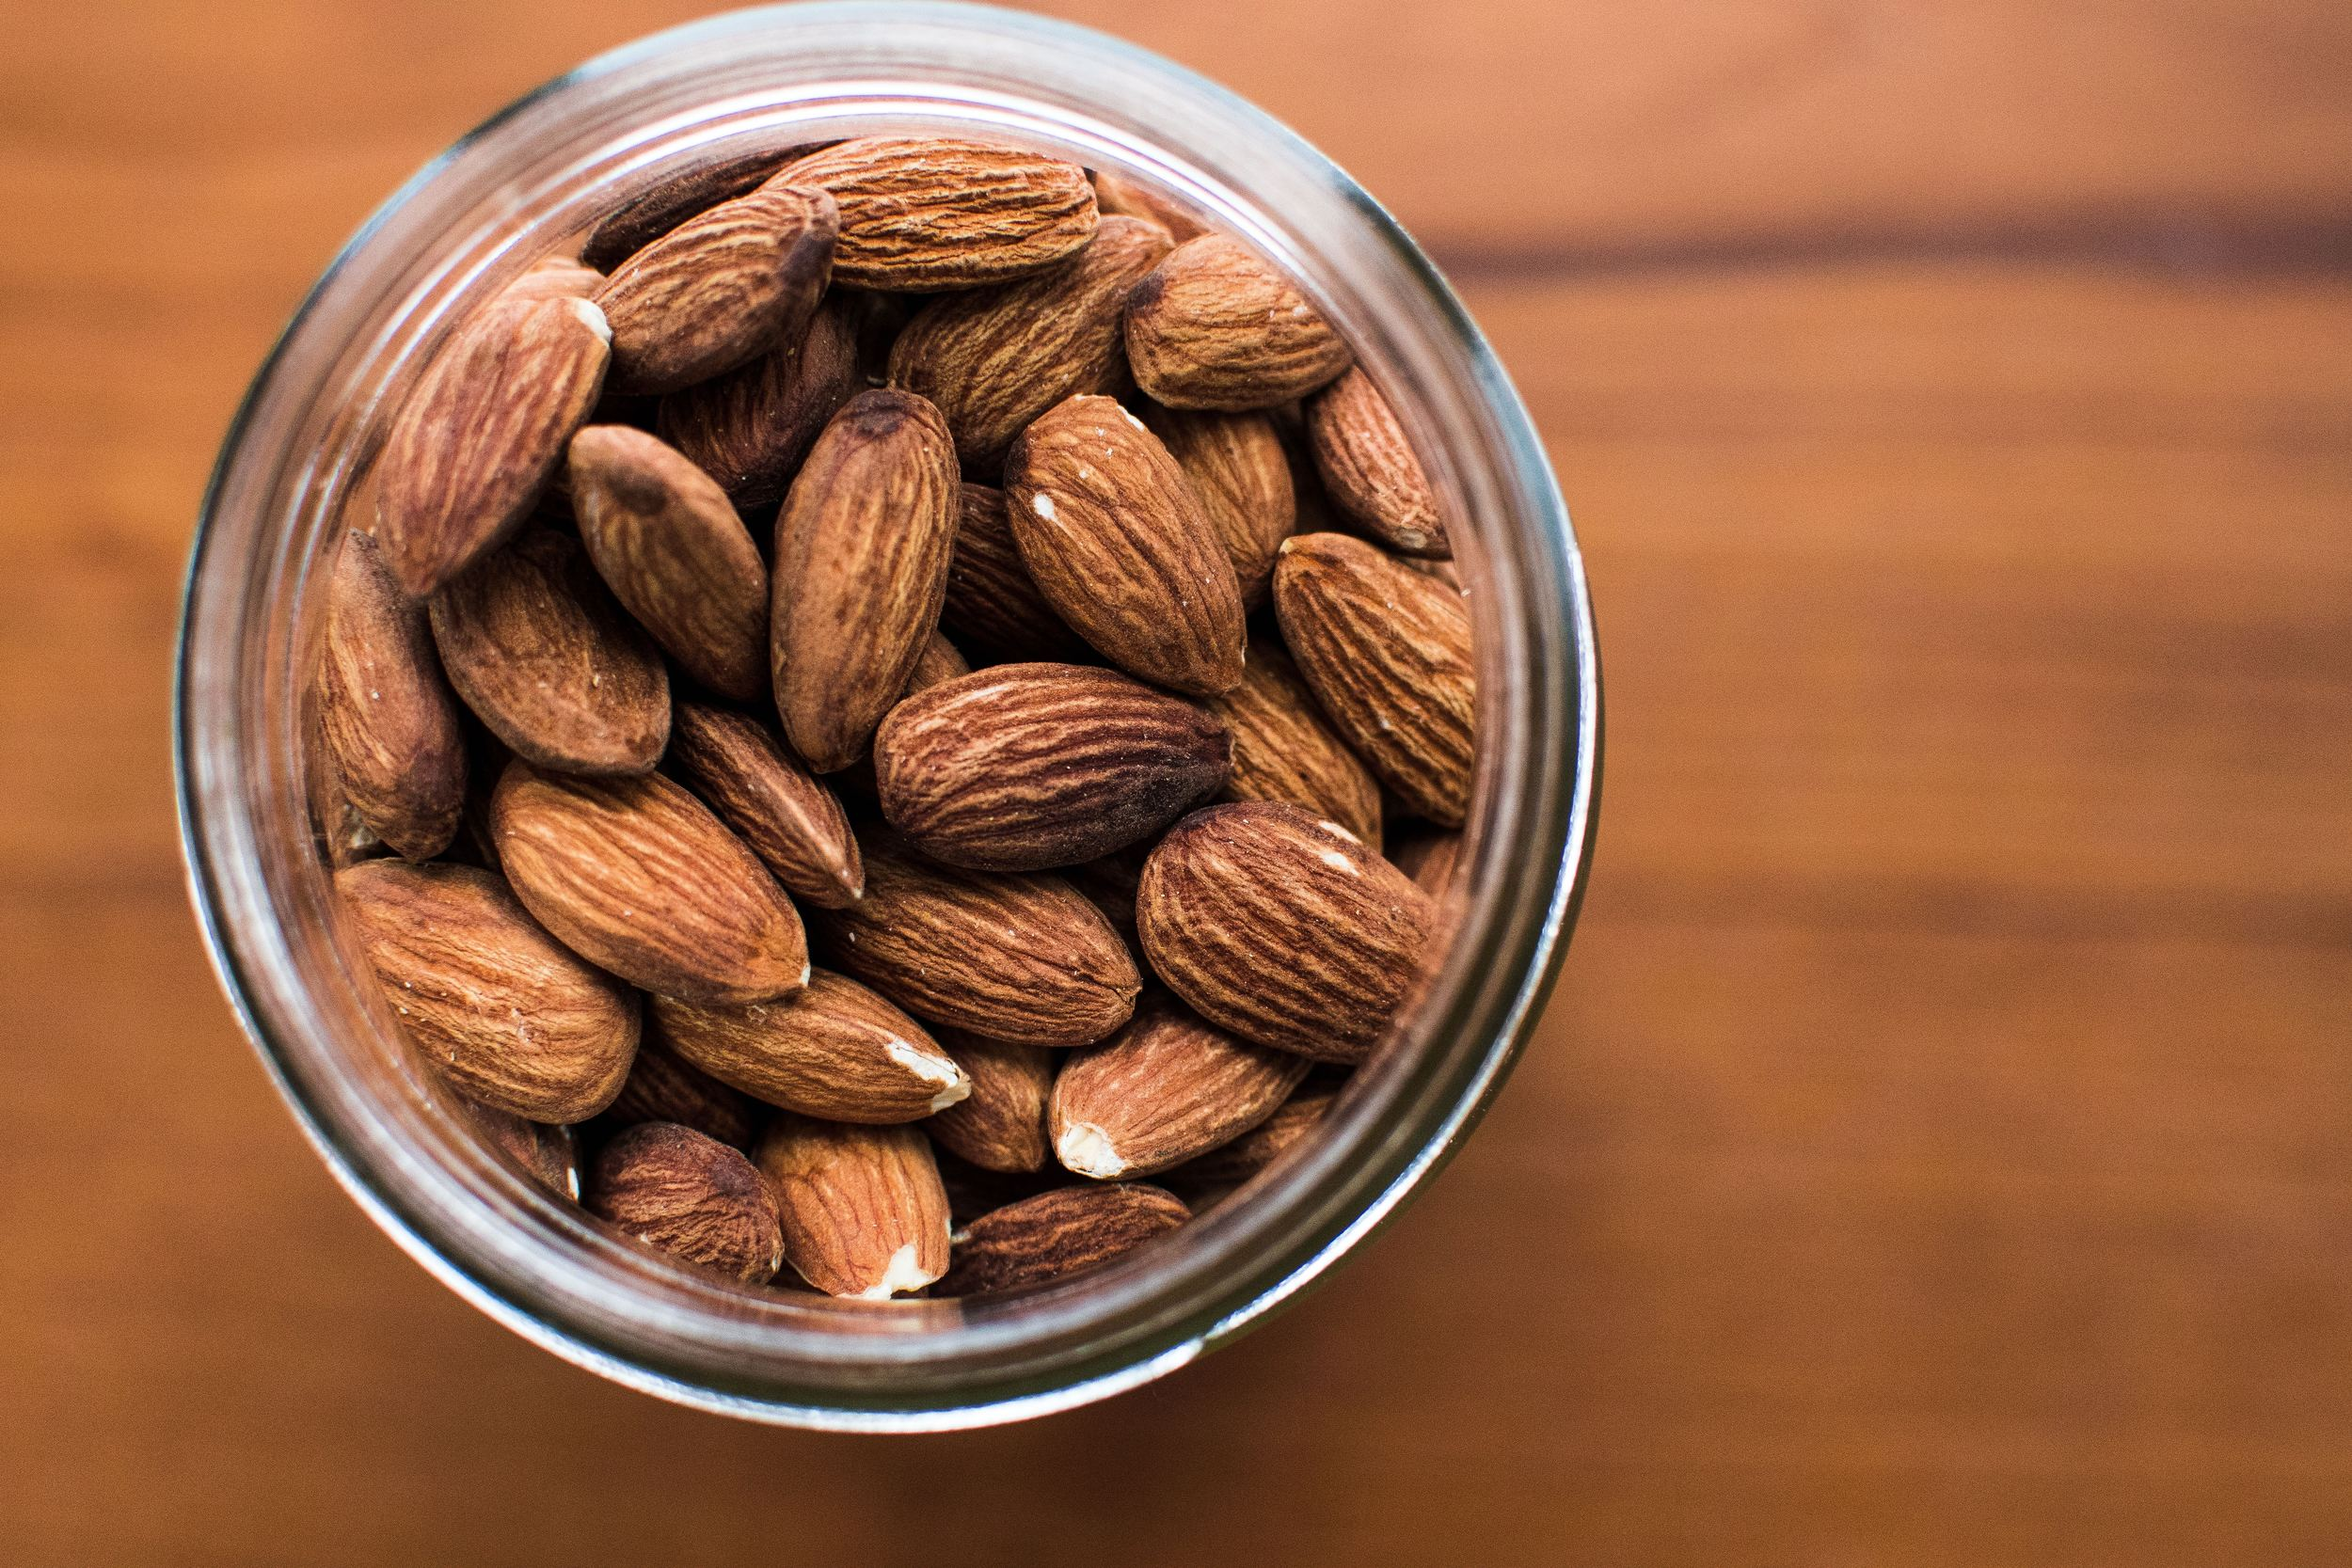 Sleep Better With These 10 Foods7